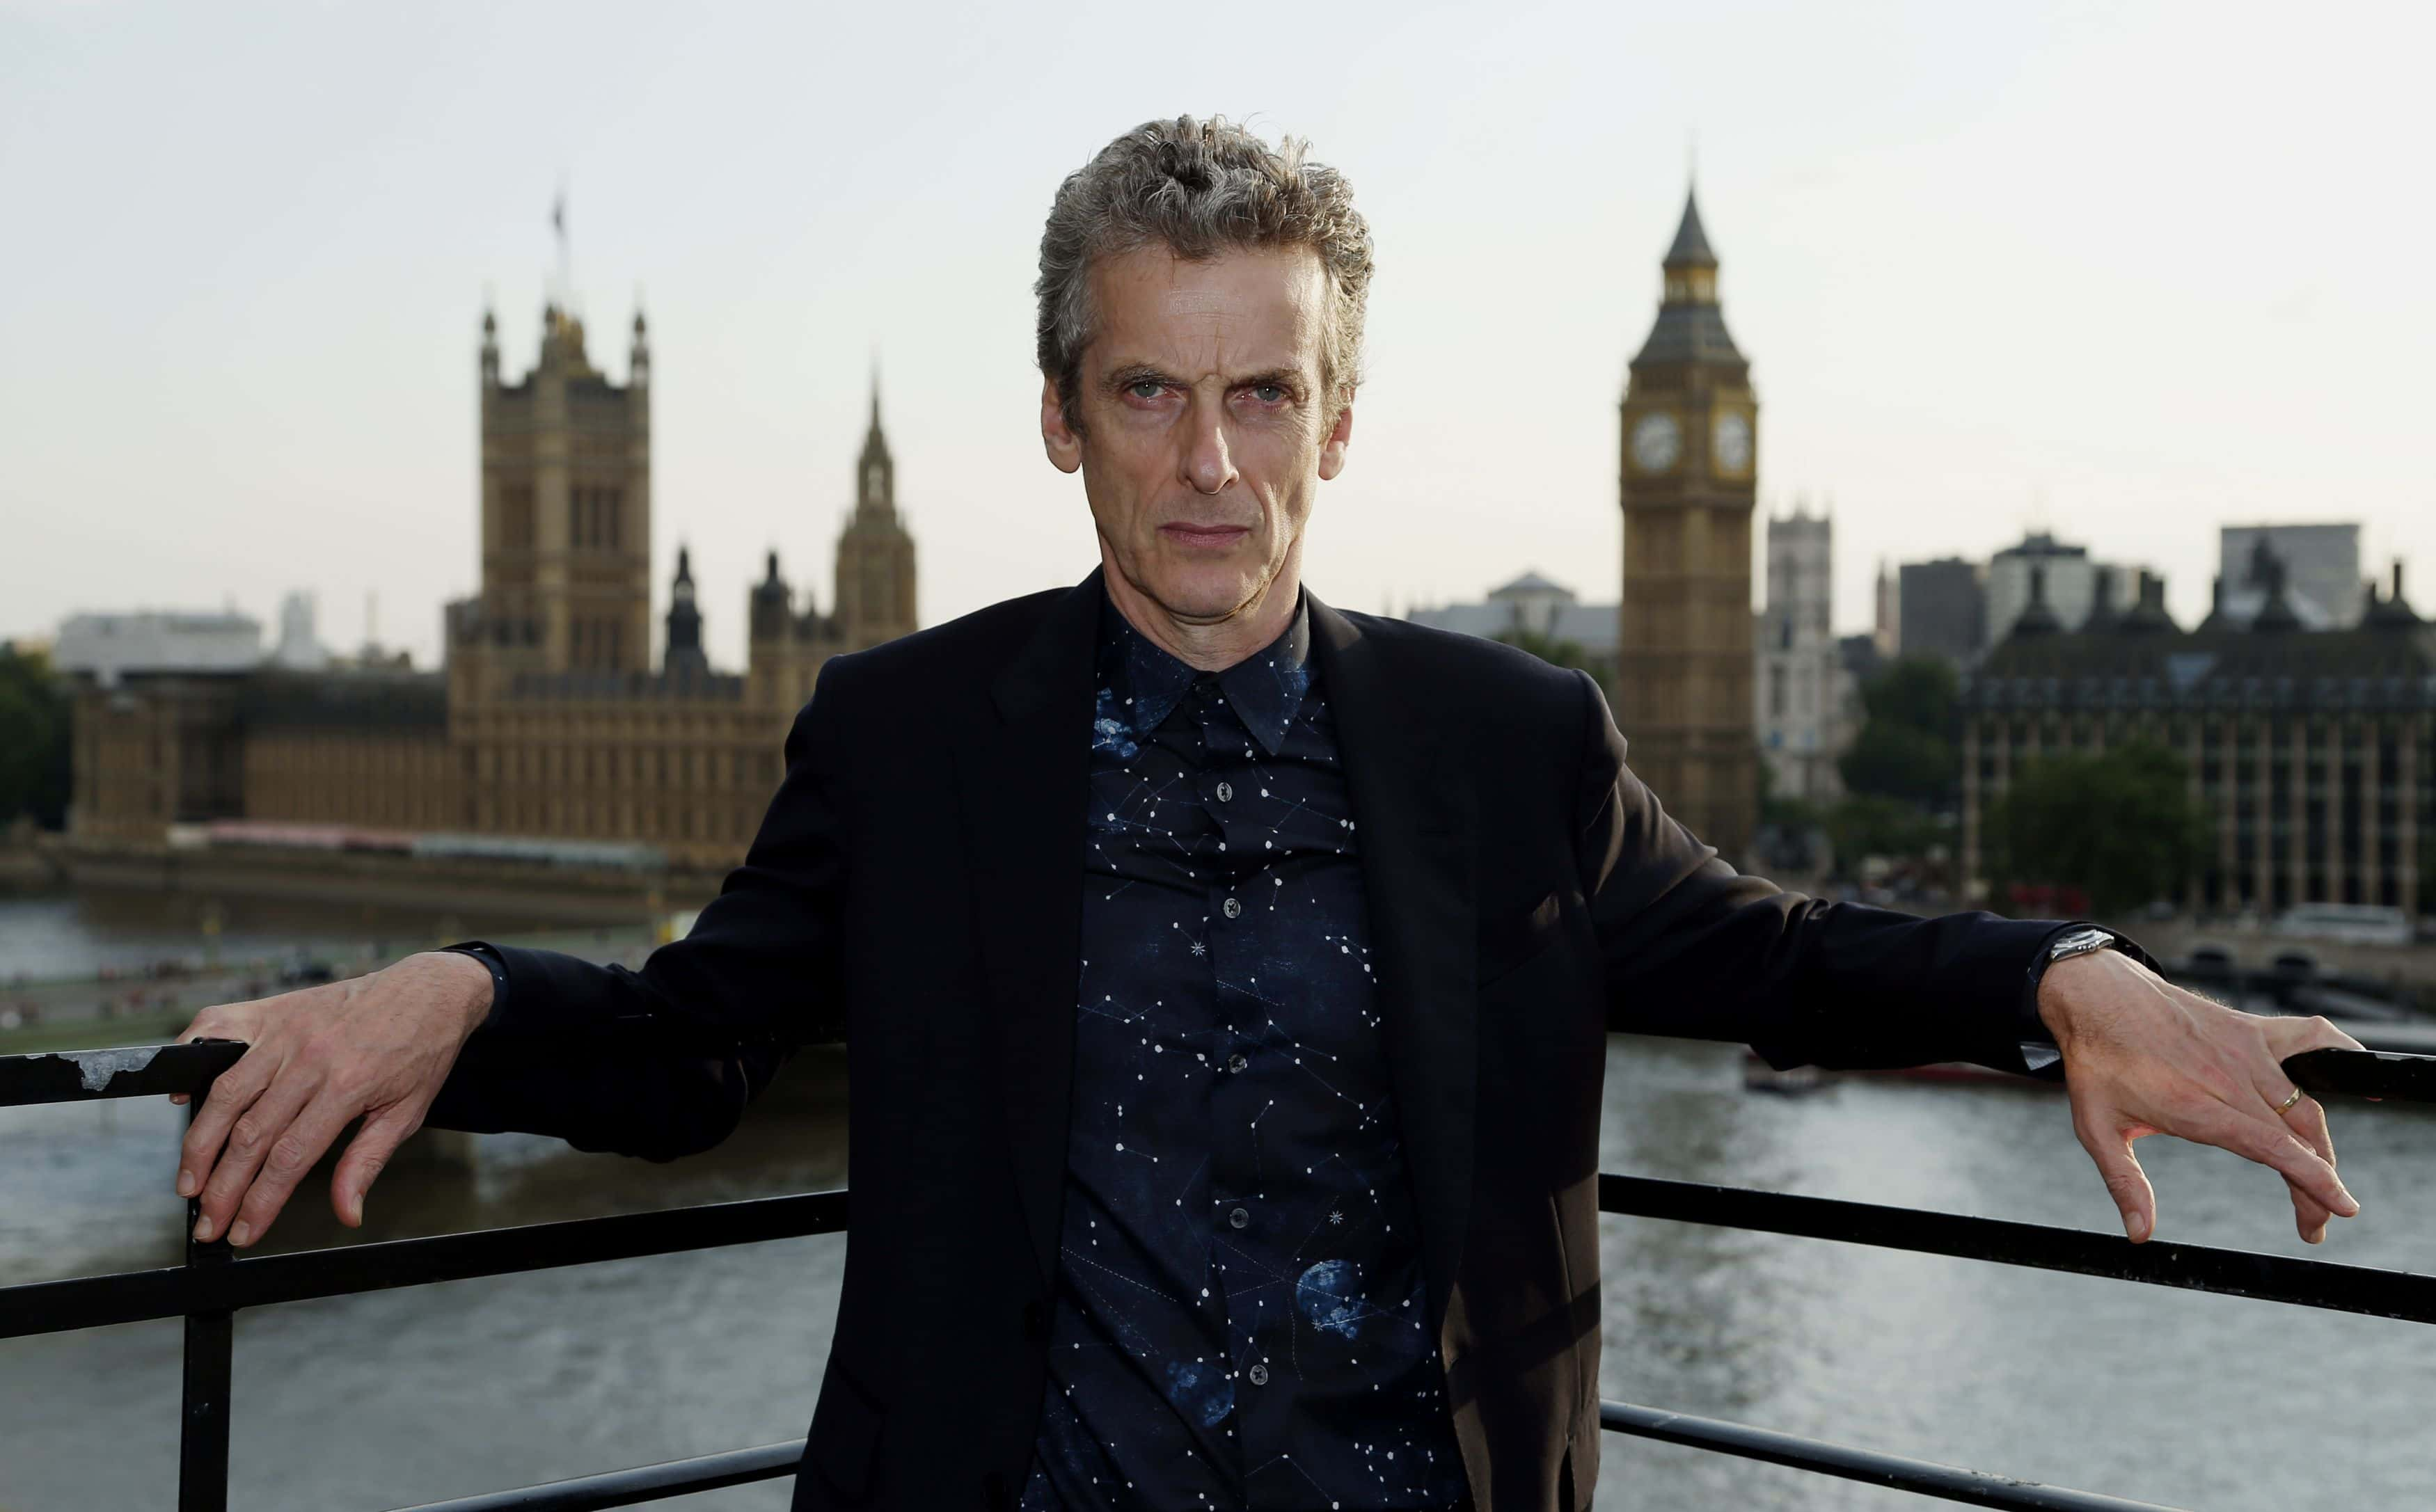 Dr Who star Peter Capaldi during a photocall to launch the new Dr Who series at the Marriott County Hall, London.